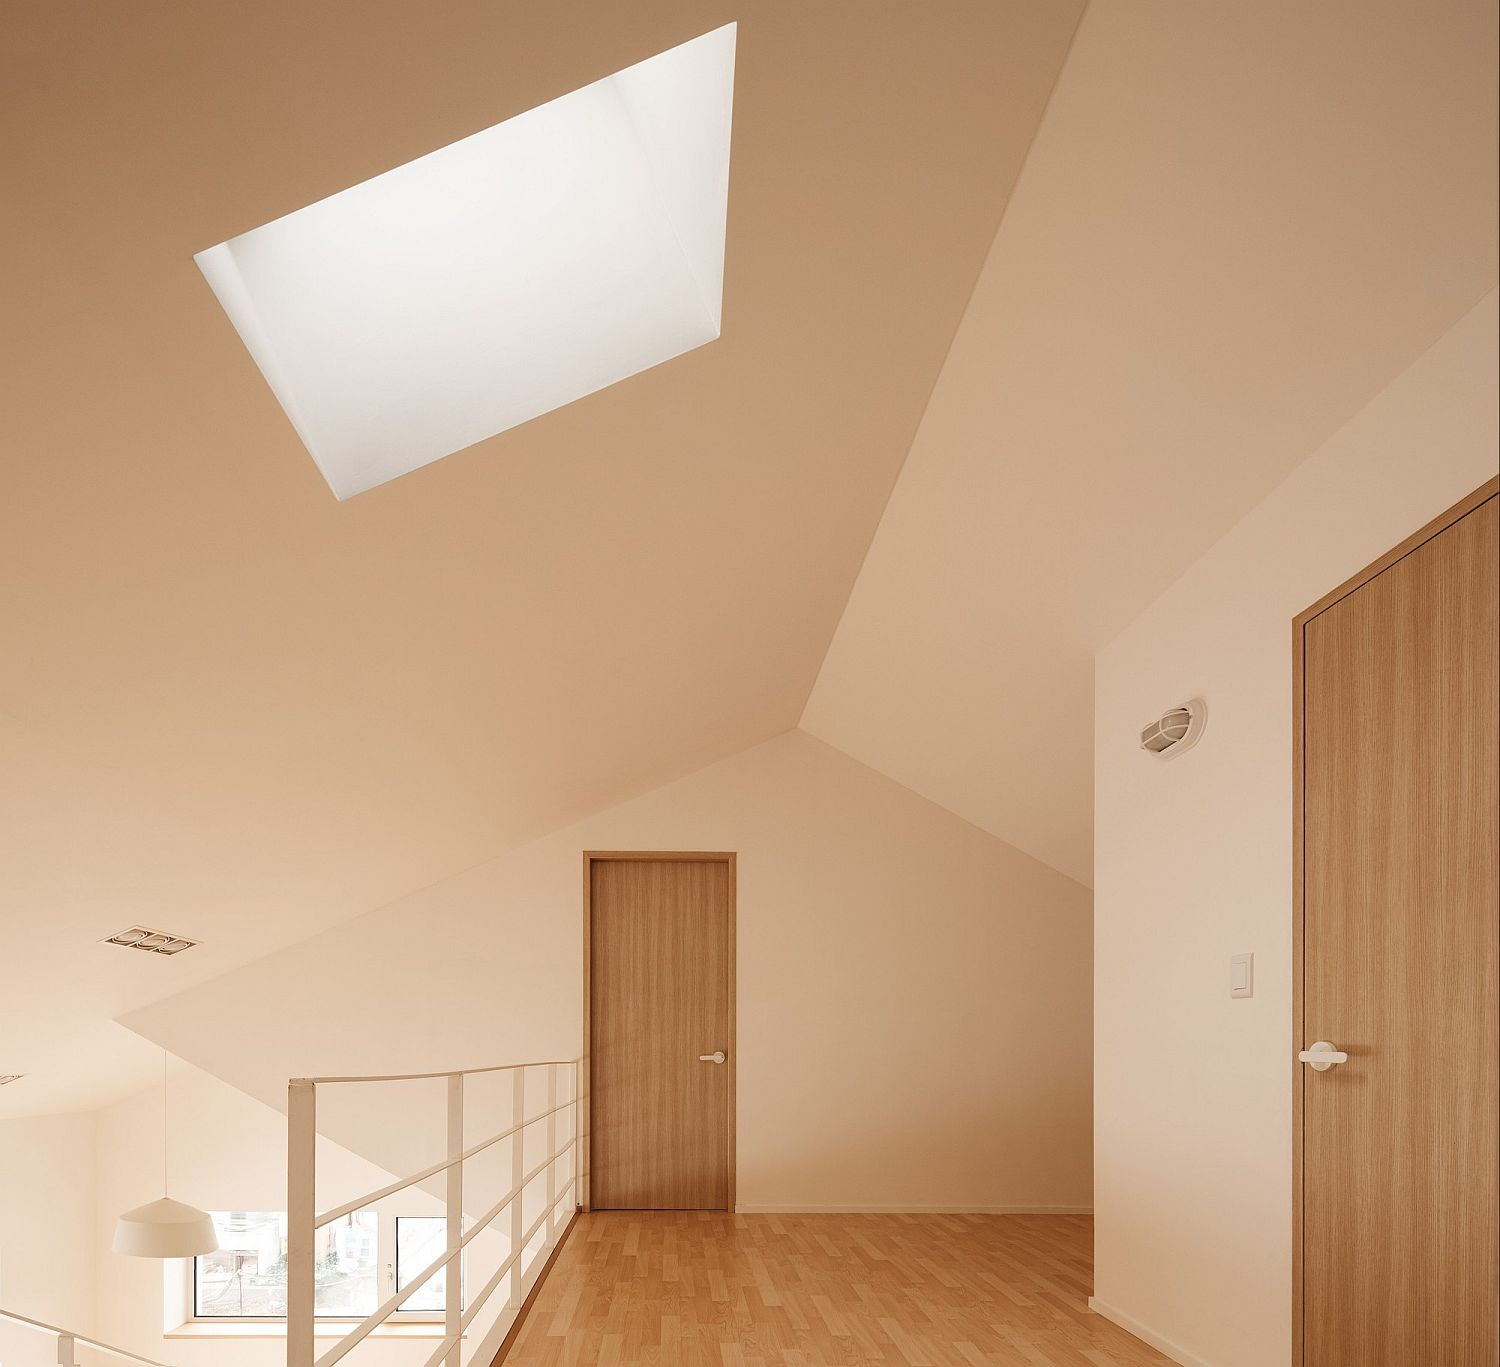 Skylight brings ample natural light into the house